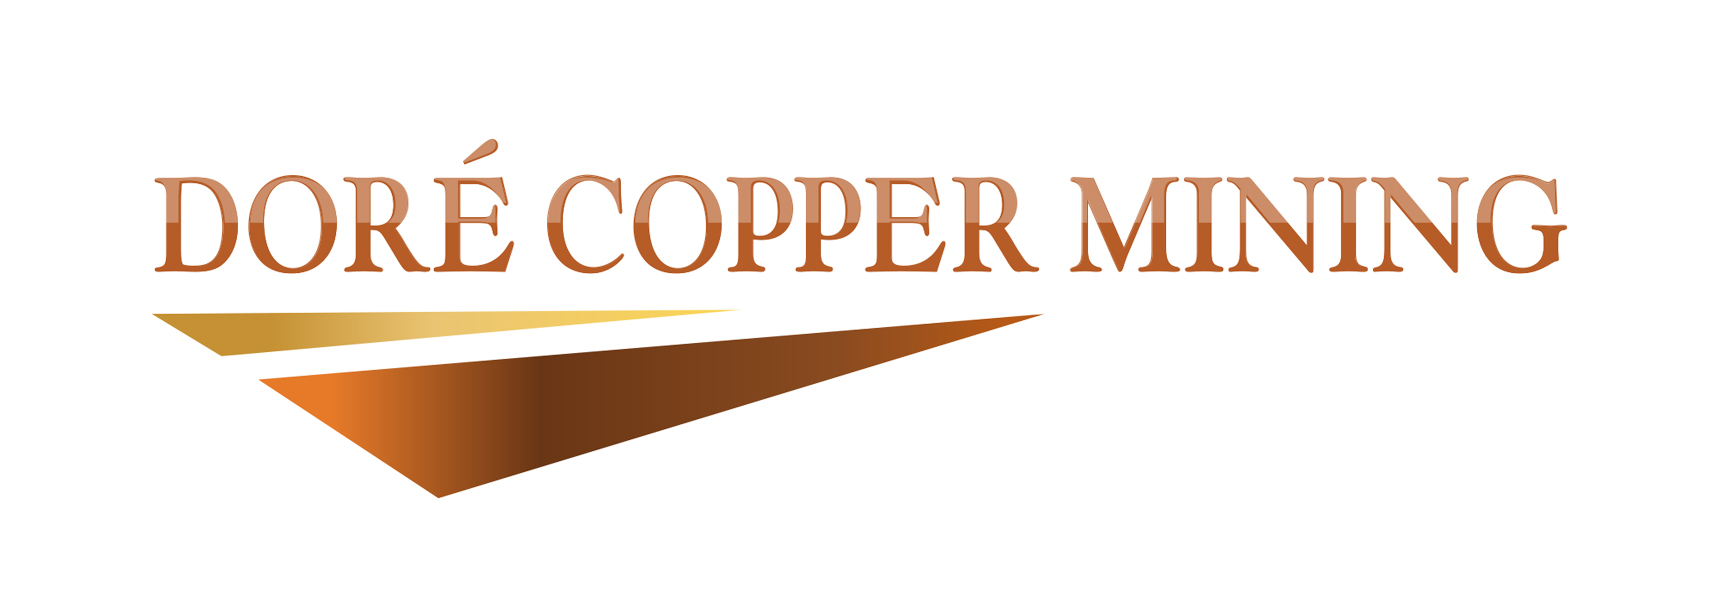 Doré Copper Stepout Drilling Extends Corner Bay Mineralization by 125 Meters Intersecting 6.45 Meters at 4.1% Copper and 0